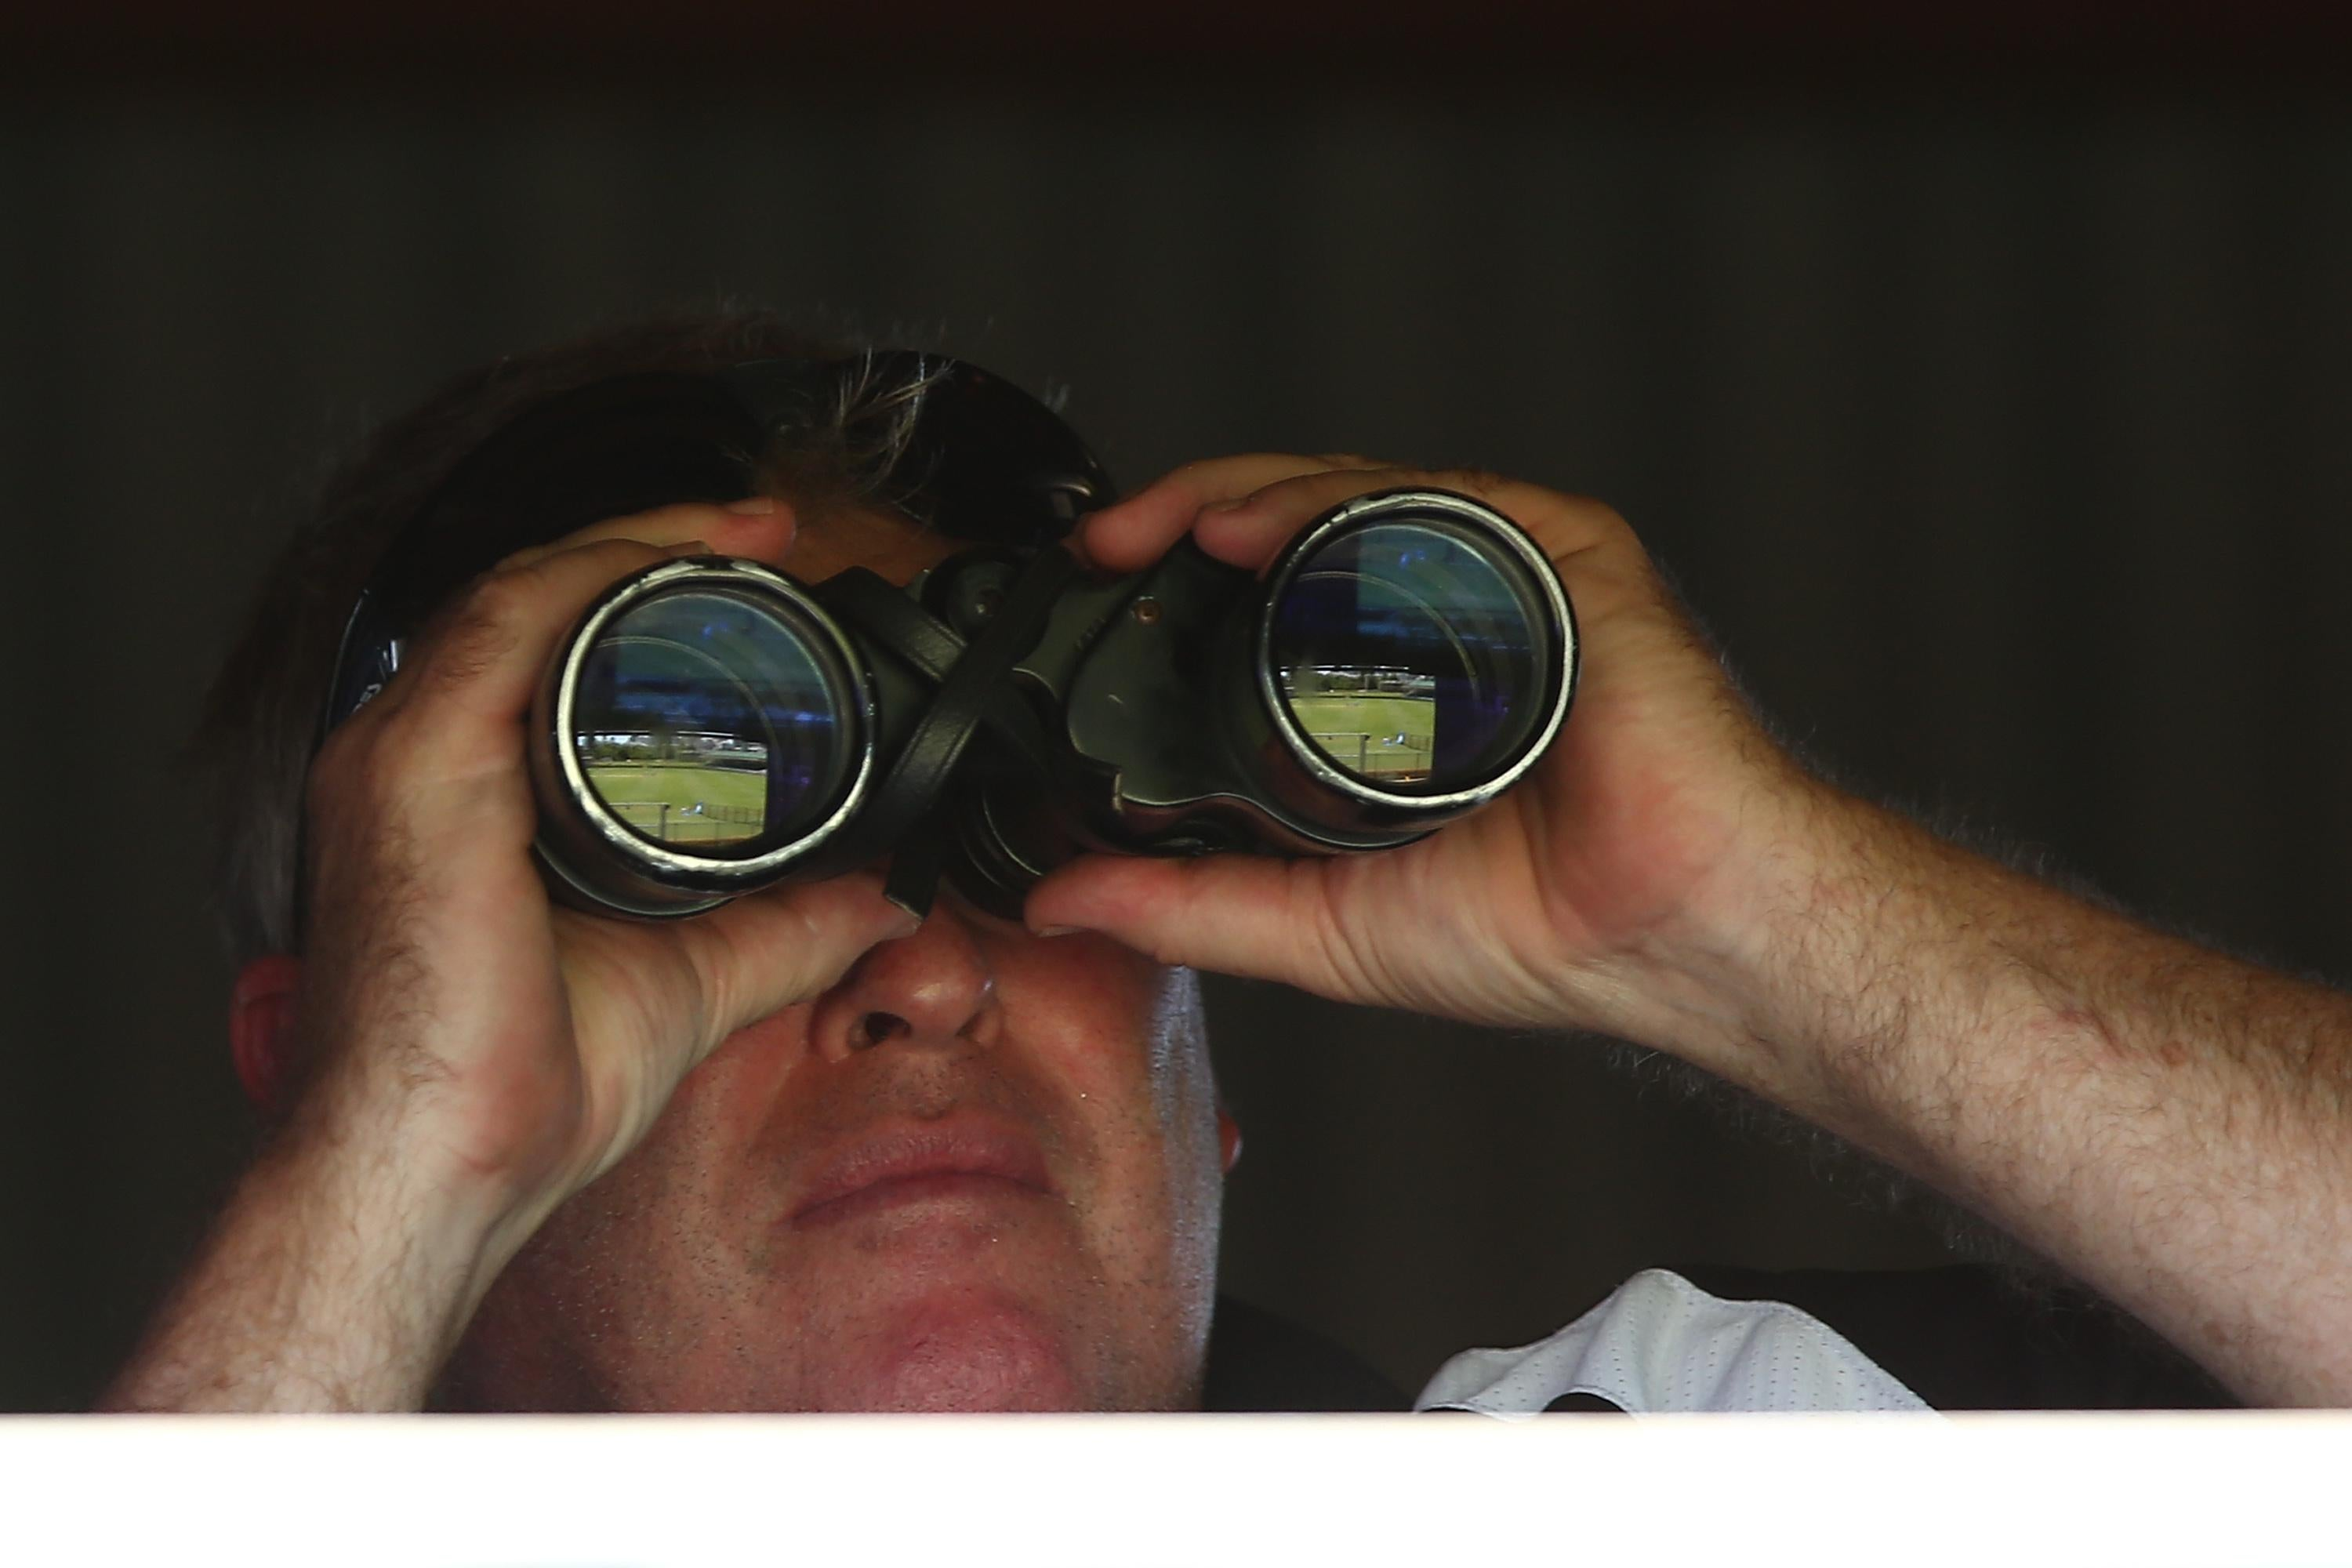 Man looking through a pair of binoculars.